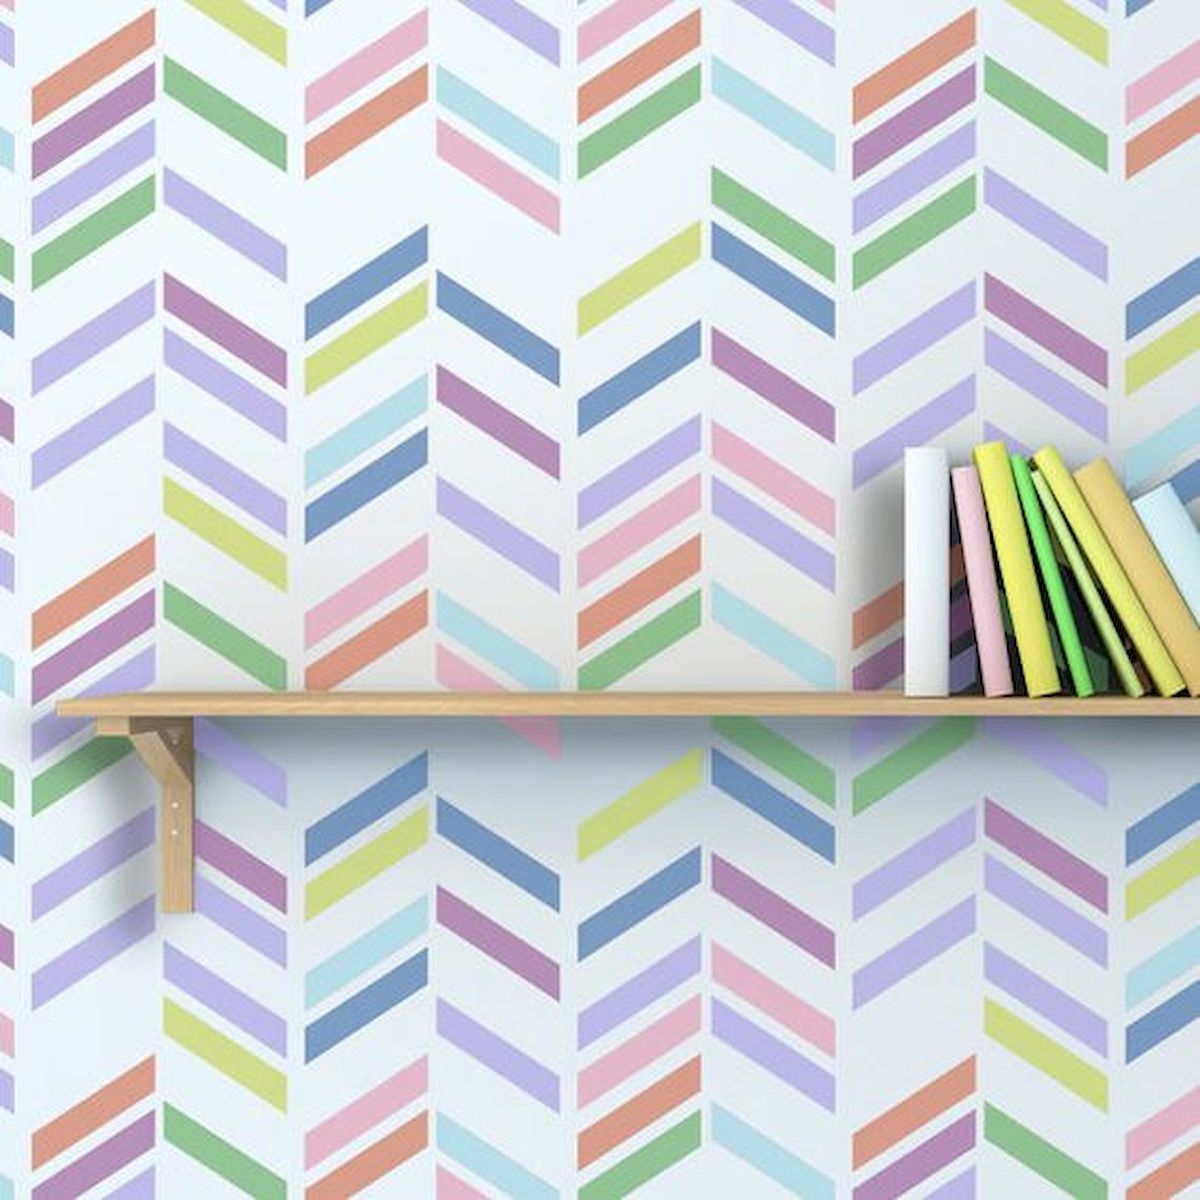 44 Easy but Awesome DIY Wall Painting Ideas to Decorate Your Home (36)